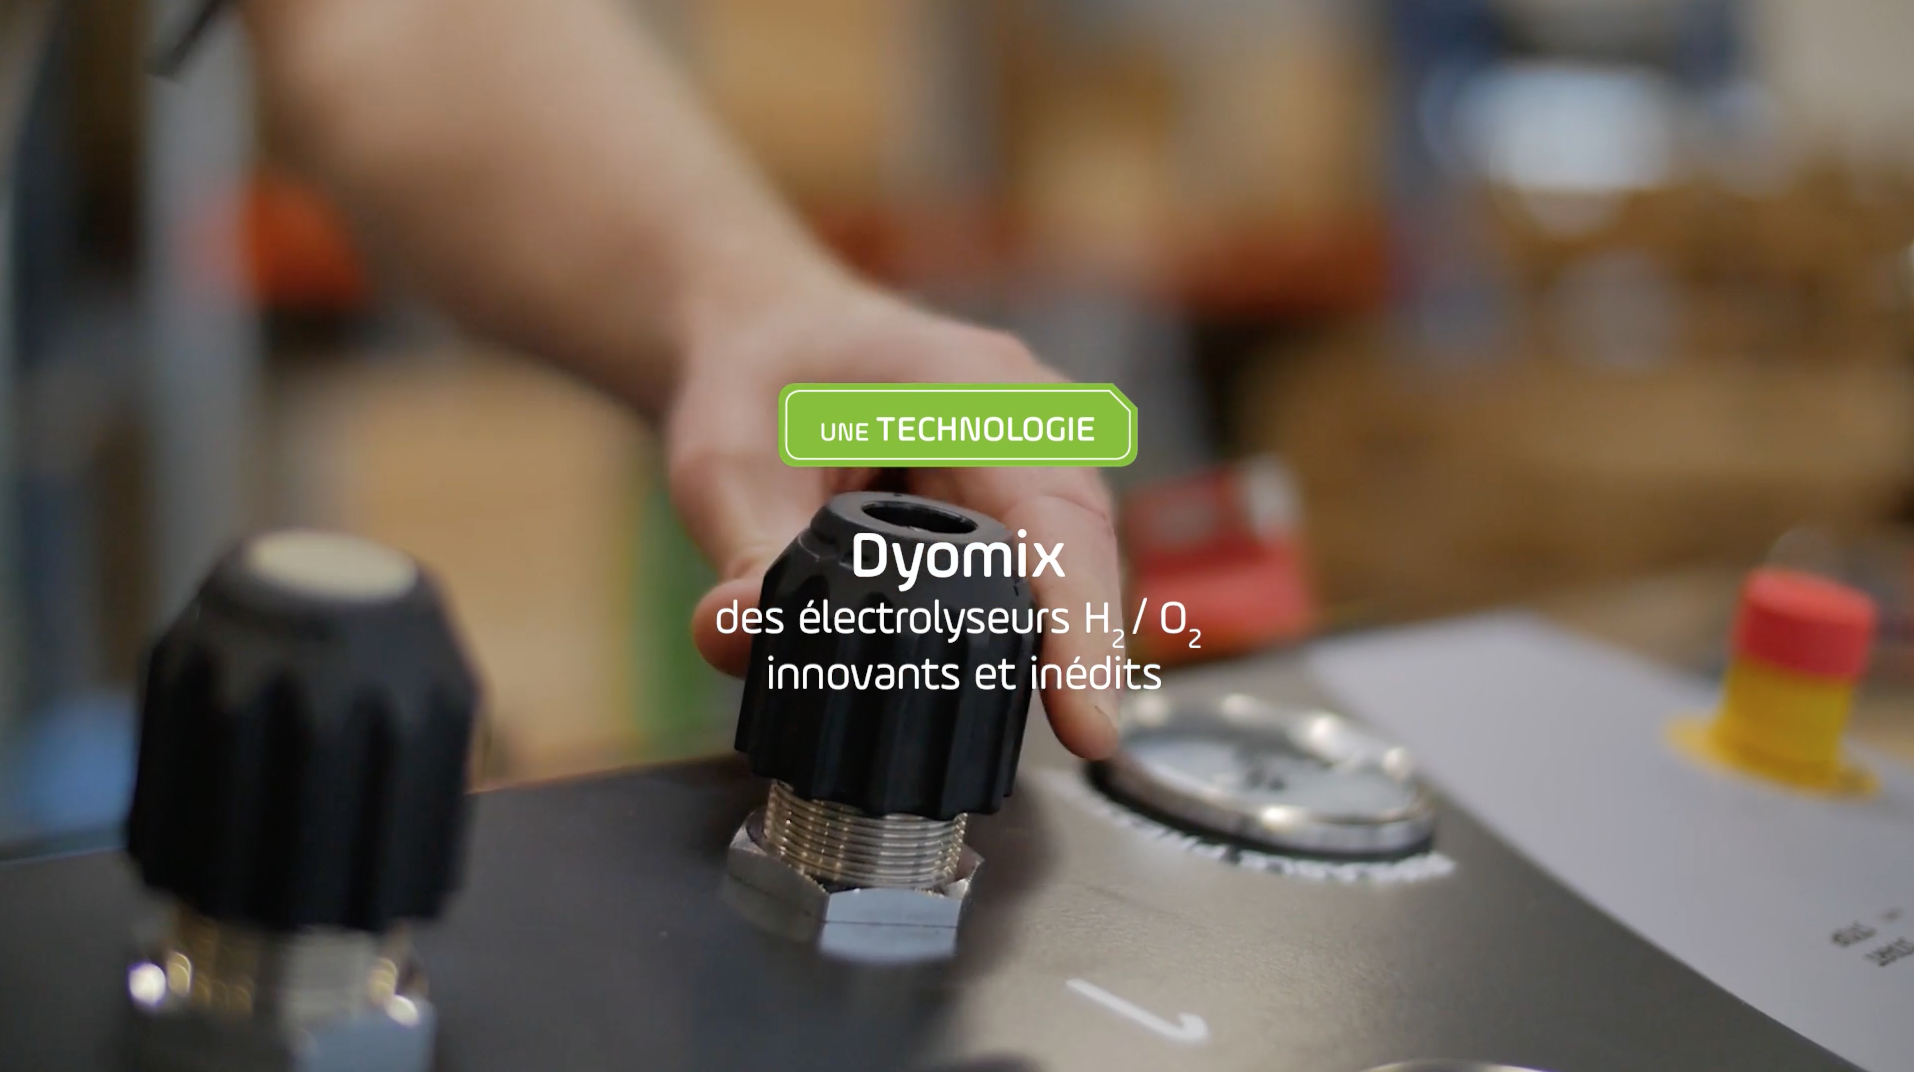 [VIDEO] Bulane Dyomix, A Flaming Technology